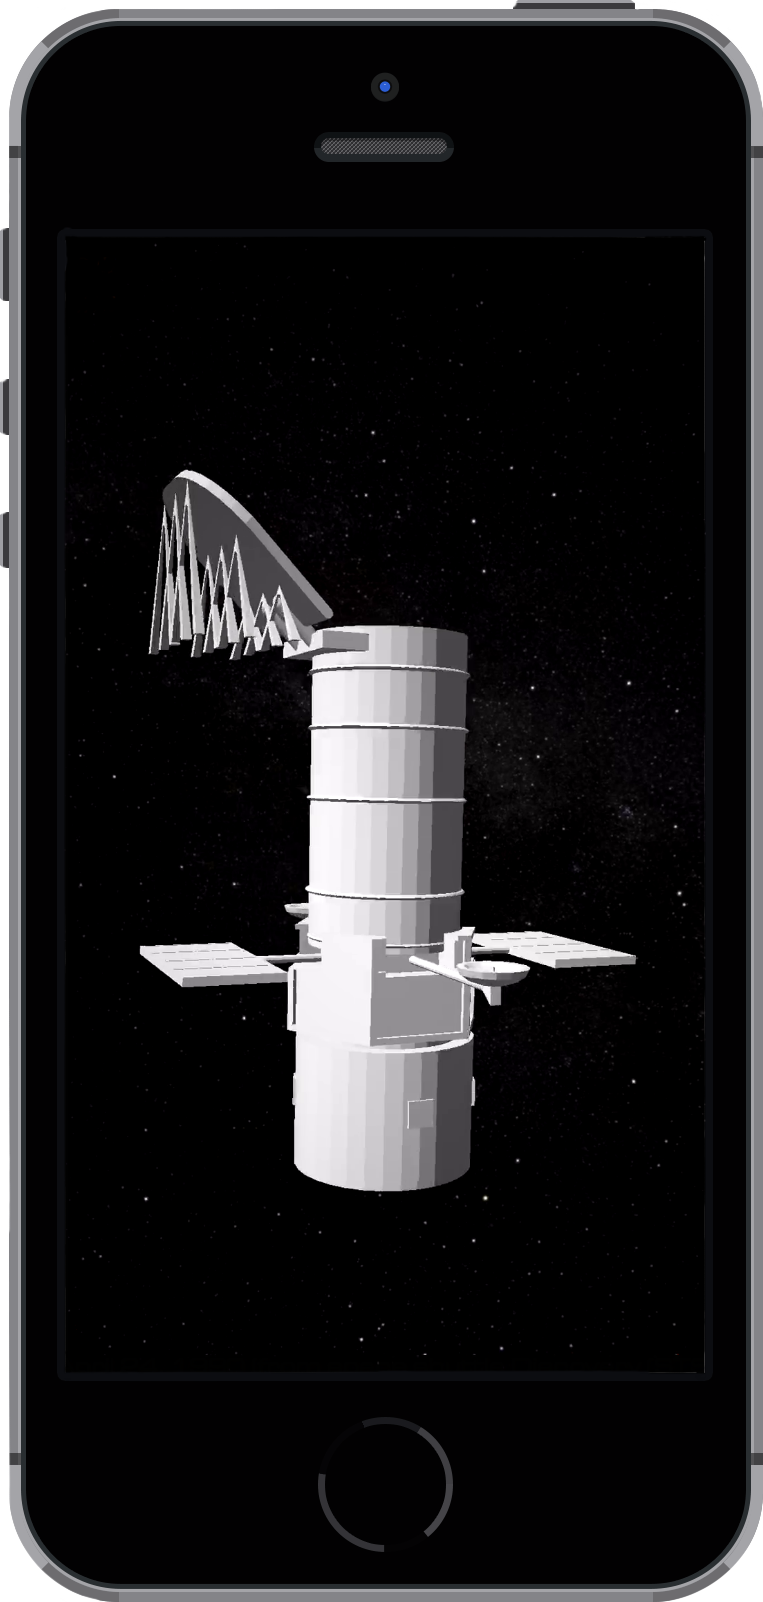 iPhone with the Hubble Space Telescope loaded